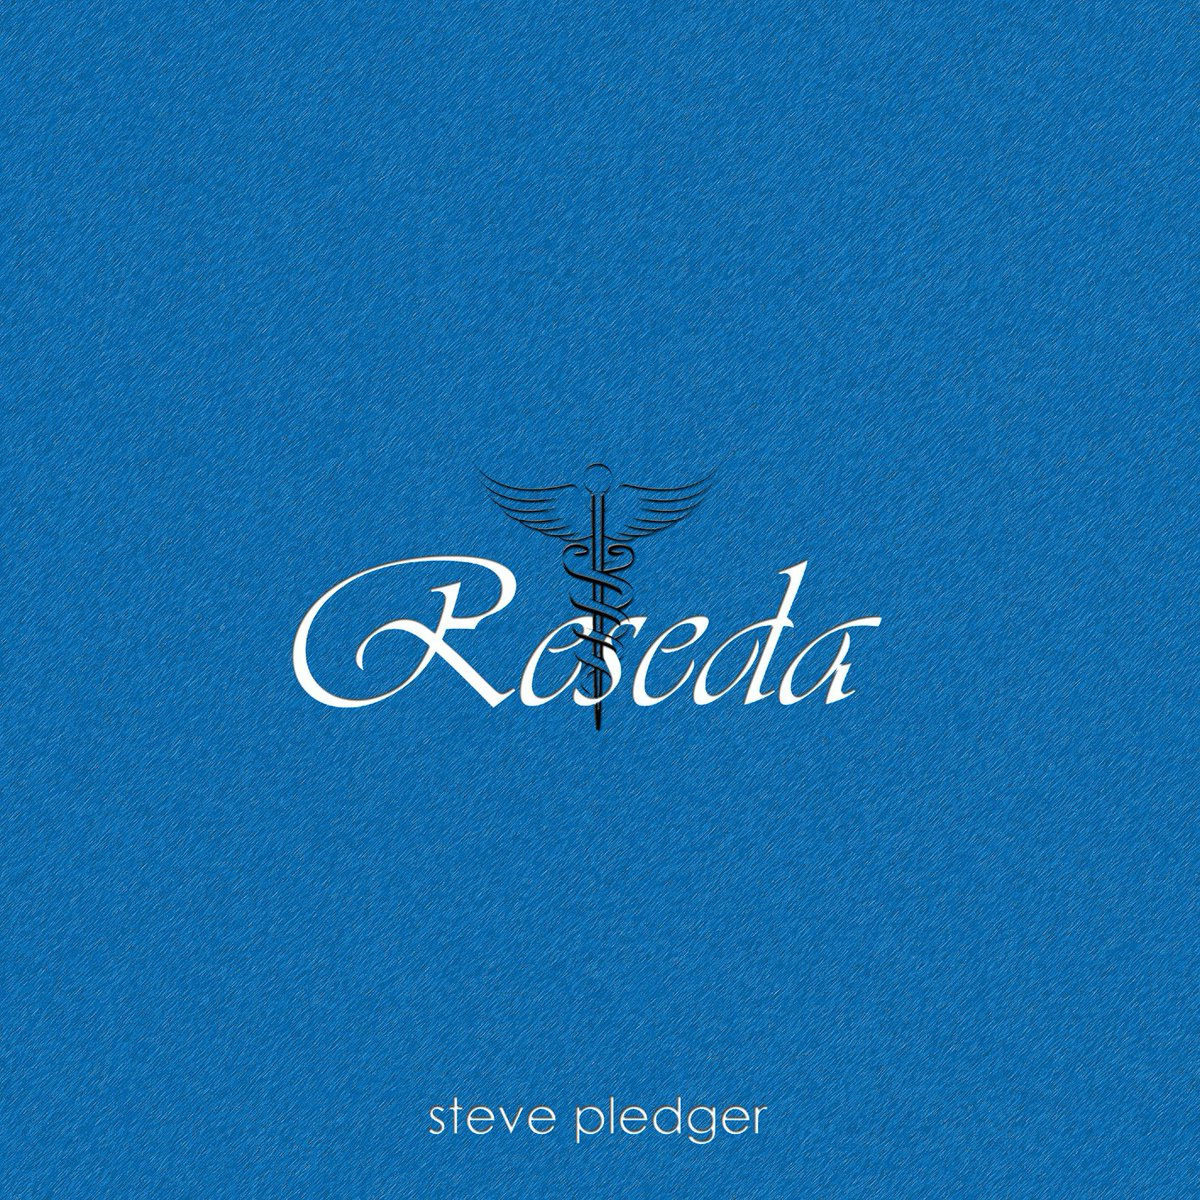 Here is my latest blog which includes news of my brand-new track, Reseda, and its first radio play tonight after 8pm on Strange Brew on Cullin FM with Steve Clarke. Please feel free to take a look/retweet as you wish.😊 Many thanks... SPx @elmoretames stevepledger.co.uk/news/article/i…